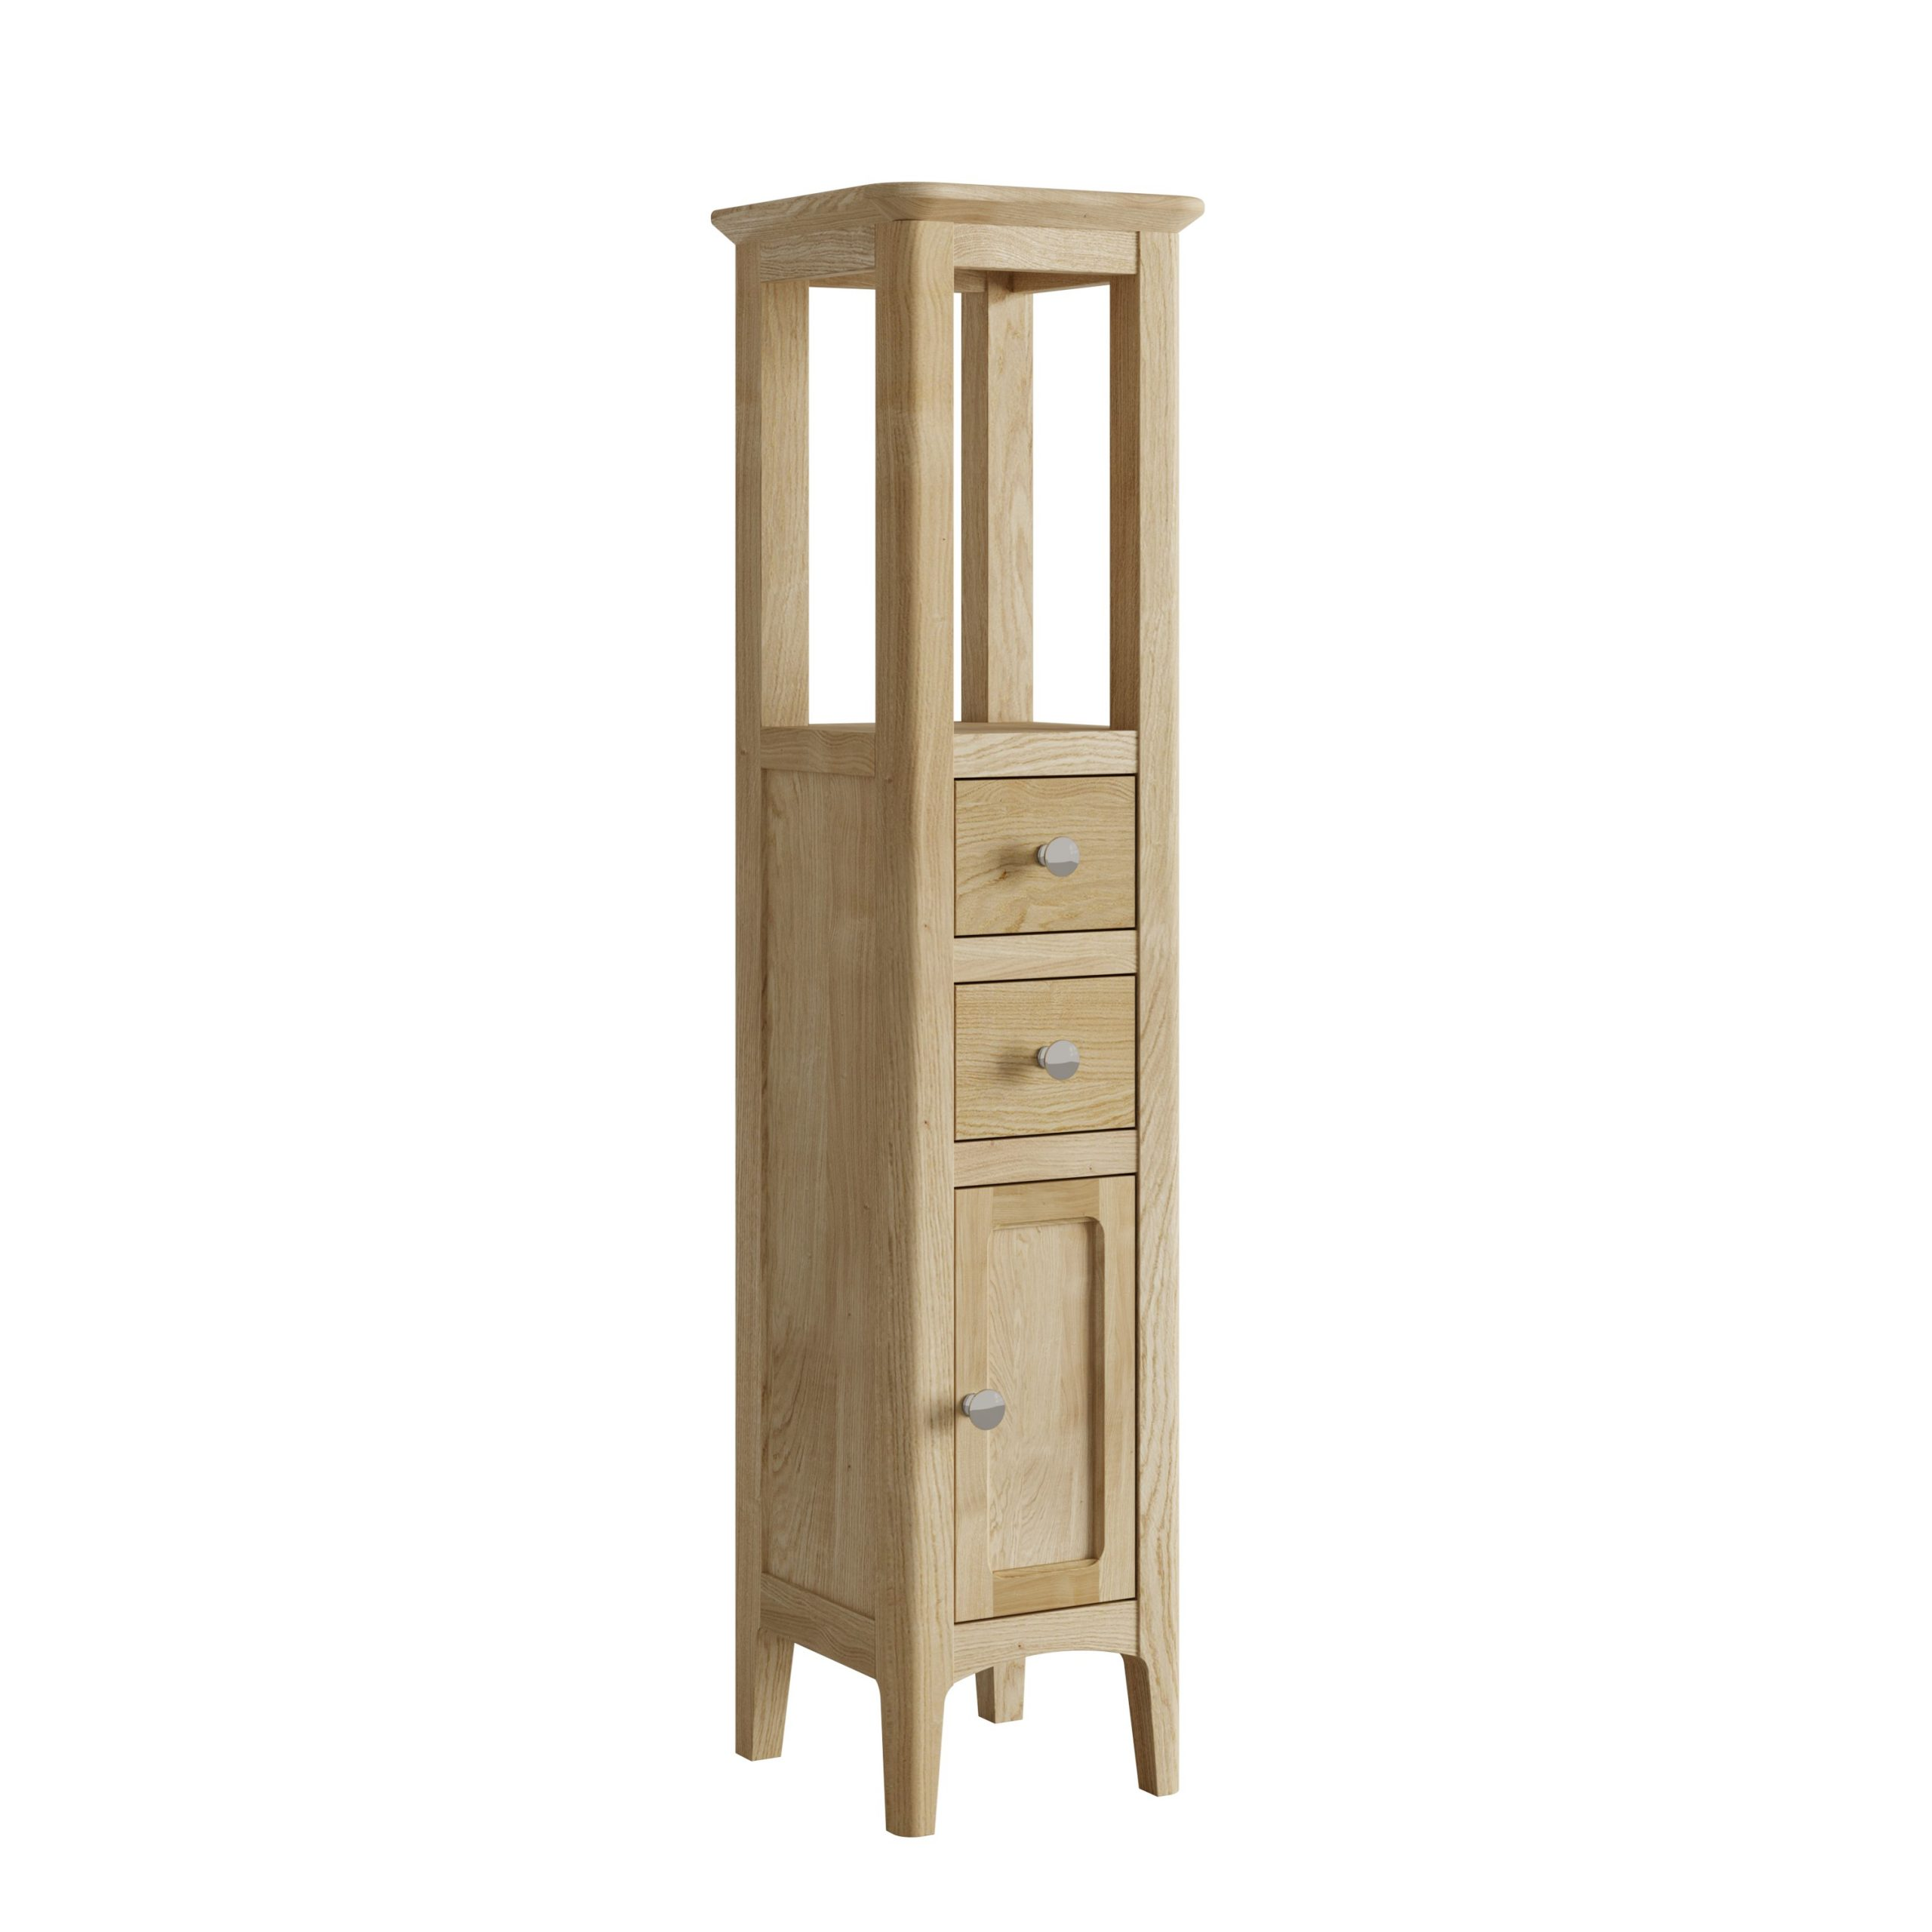 Oak Tower Cabinet - Our Price - Only £179